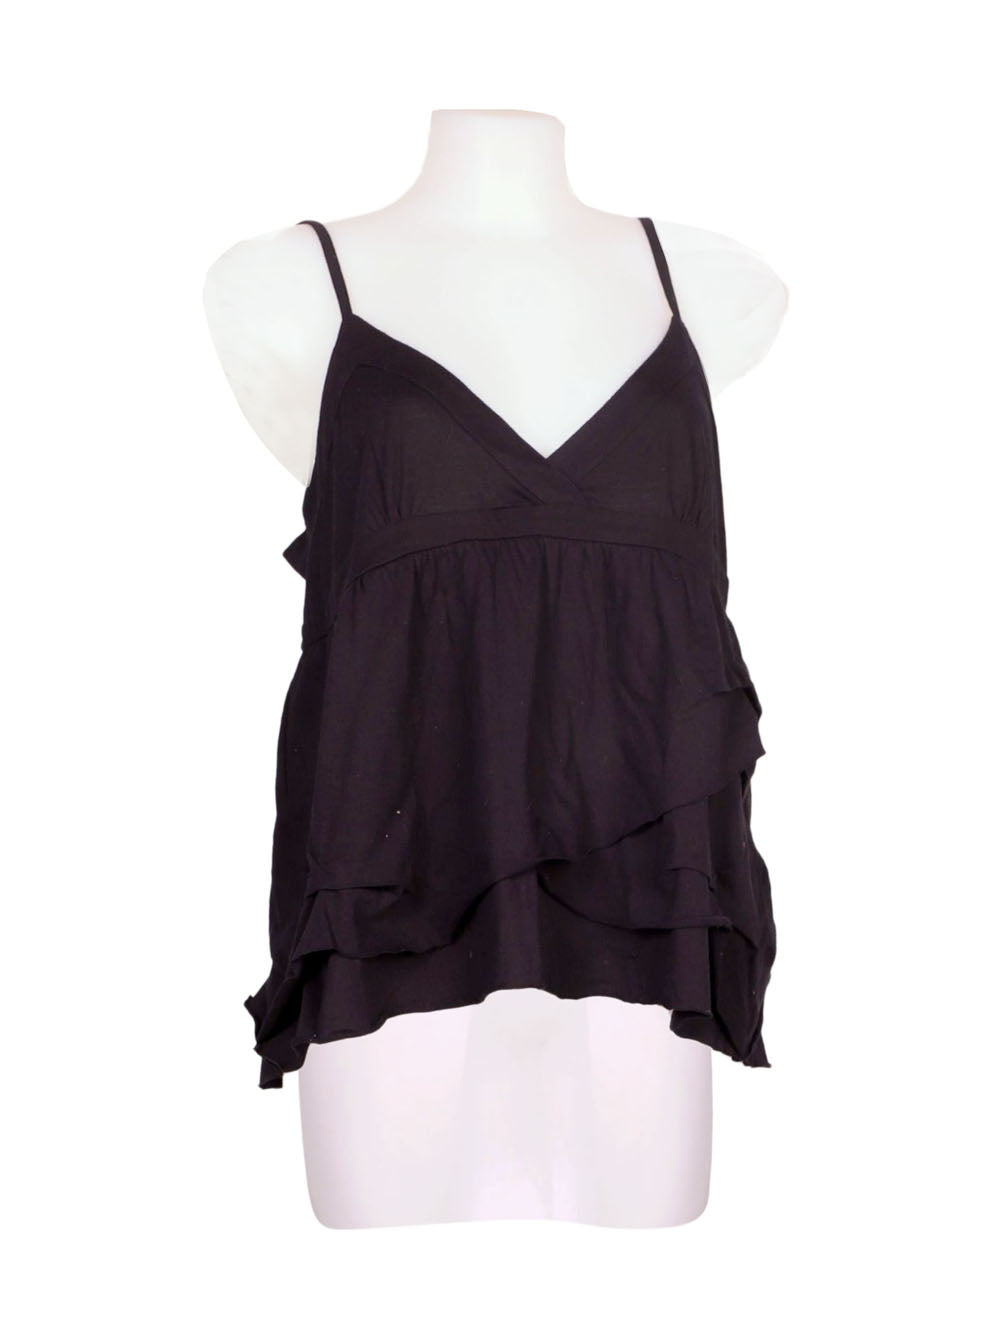 Front photo of Preloved Naf Naf Black Woman's sleeveless top - size 12/L